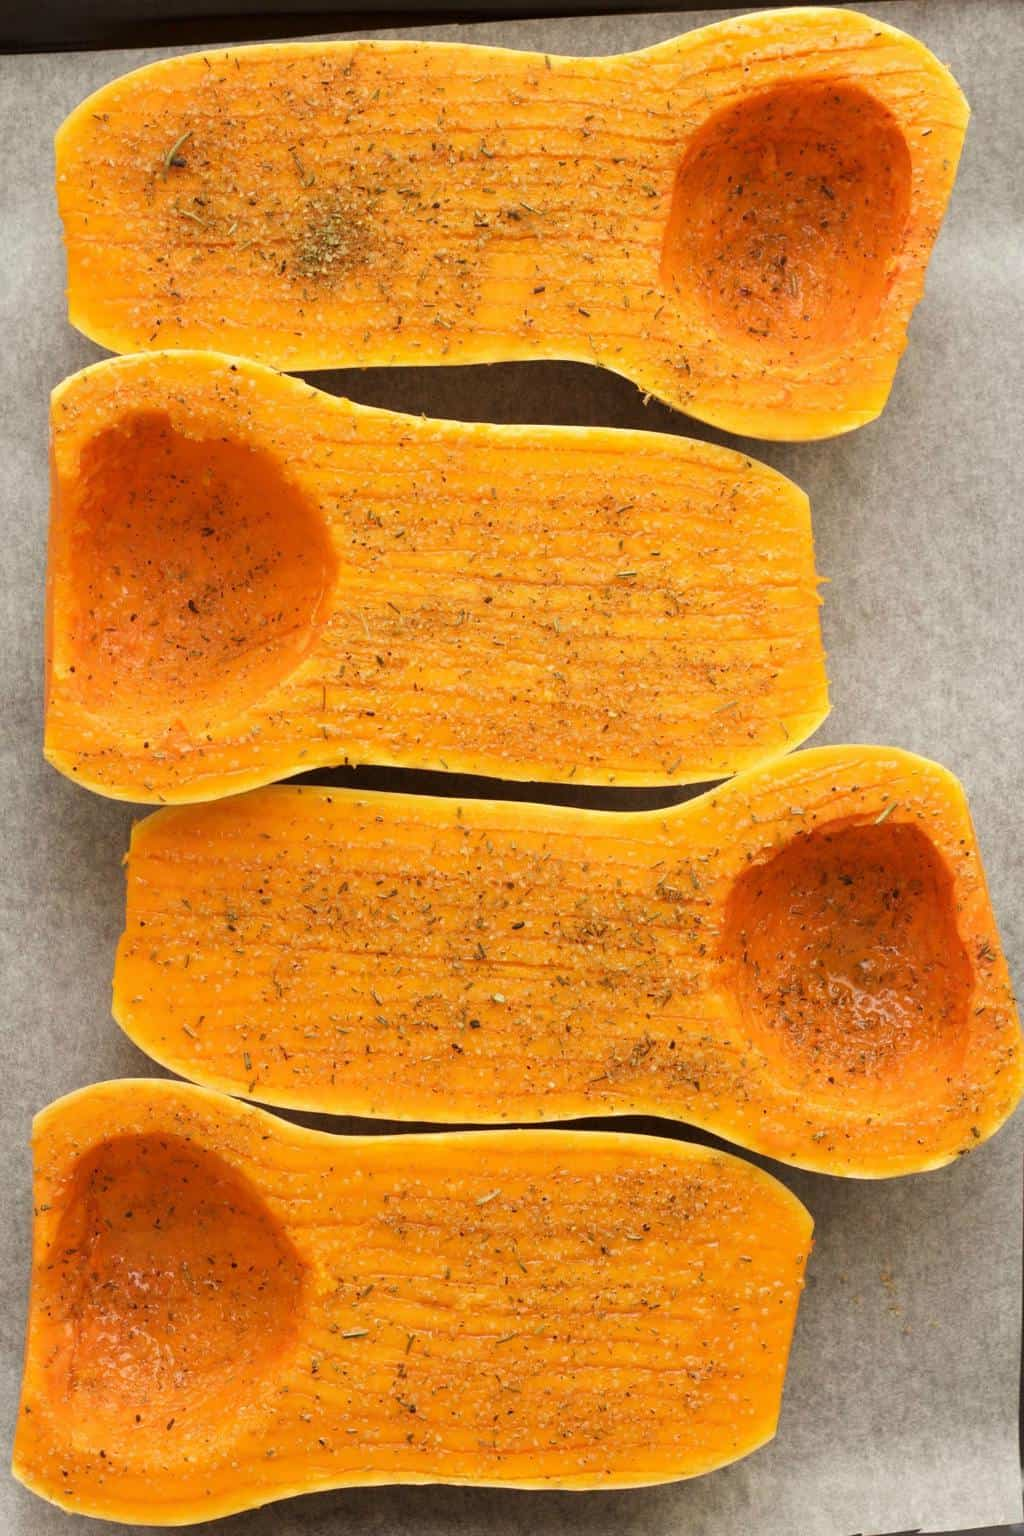 Making Stuffed Roasted Butternut #vegan #lovingitvegan #glutenfree #entree